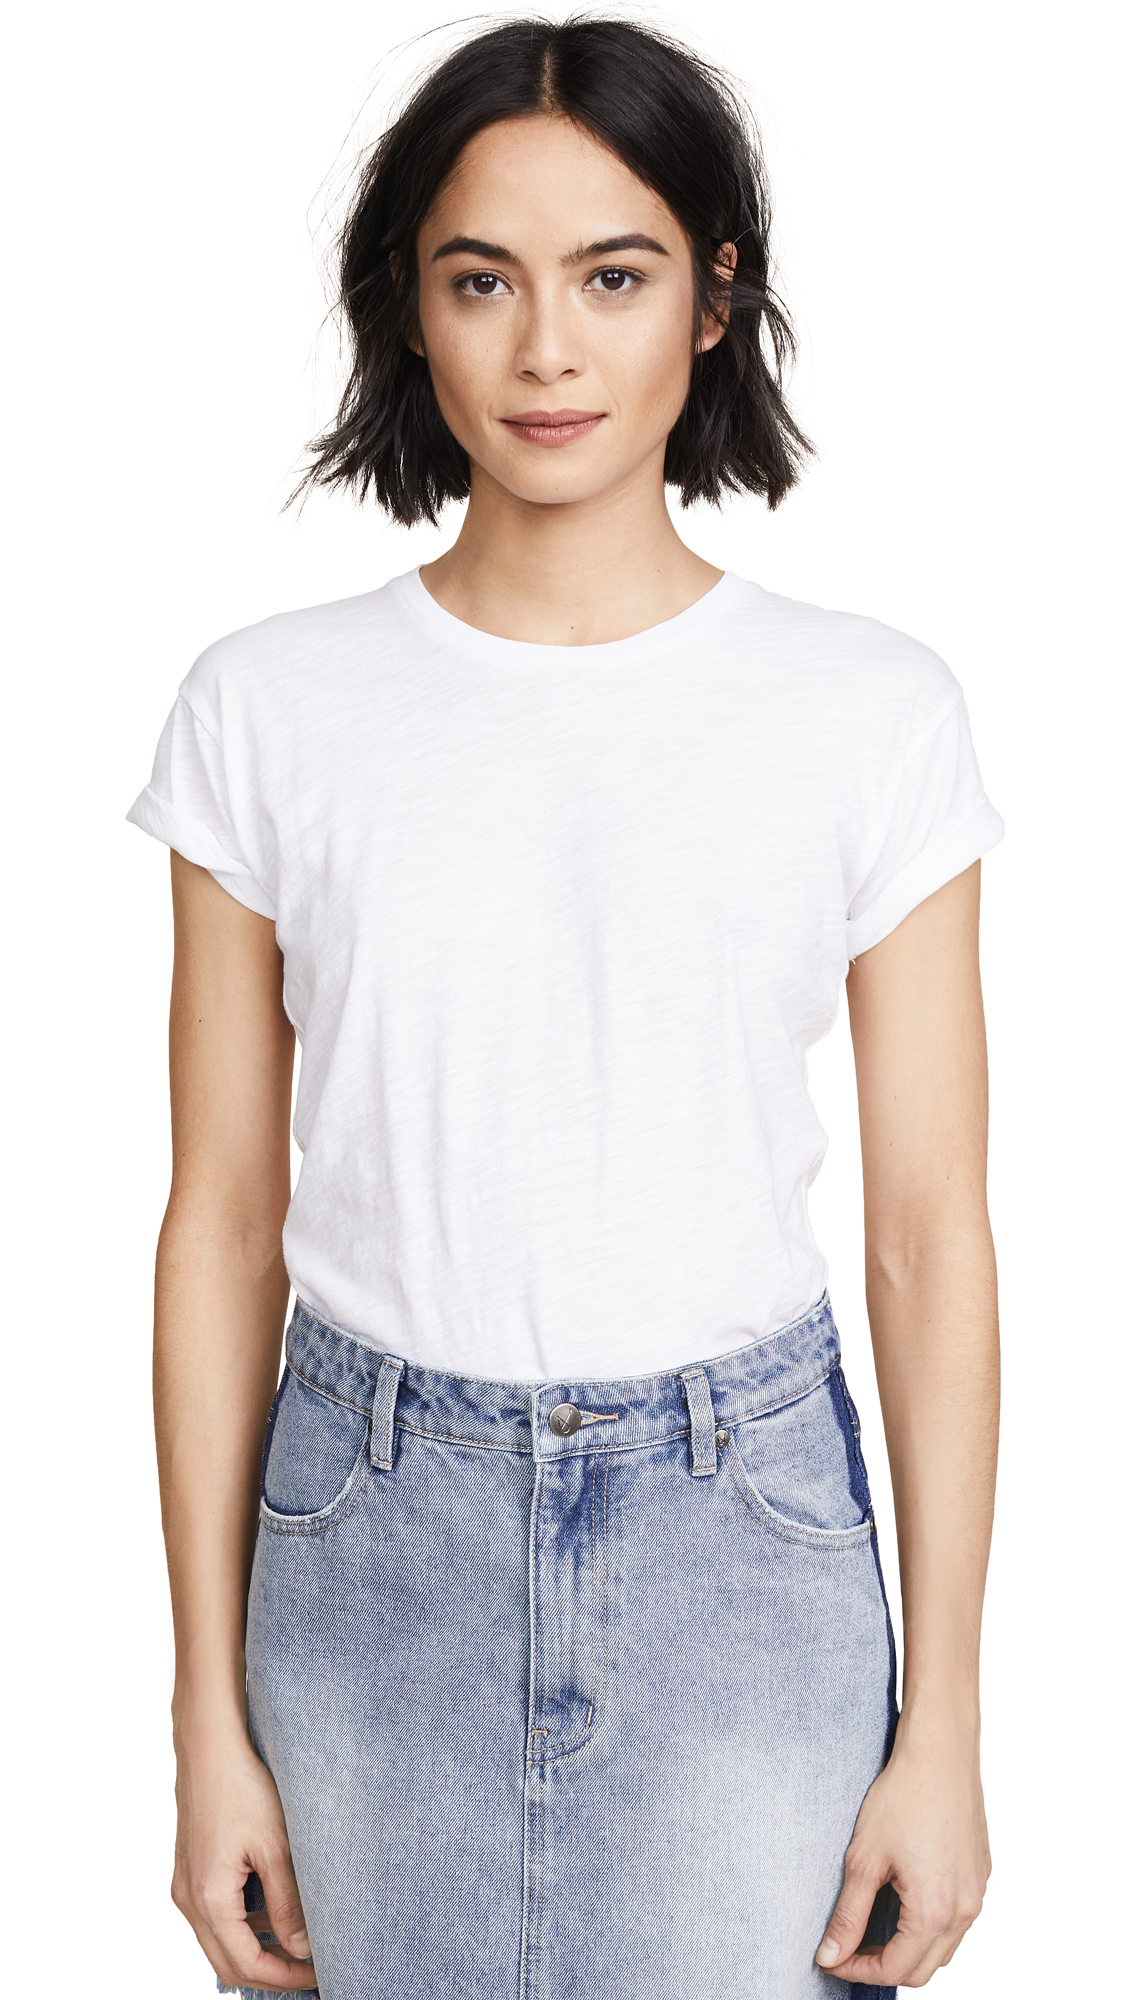 Madewell Whisper Cotton Crew Tee - Optic White